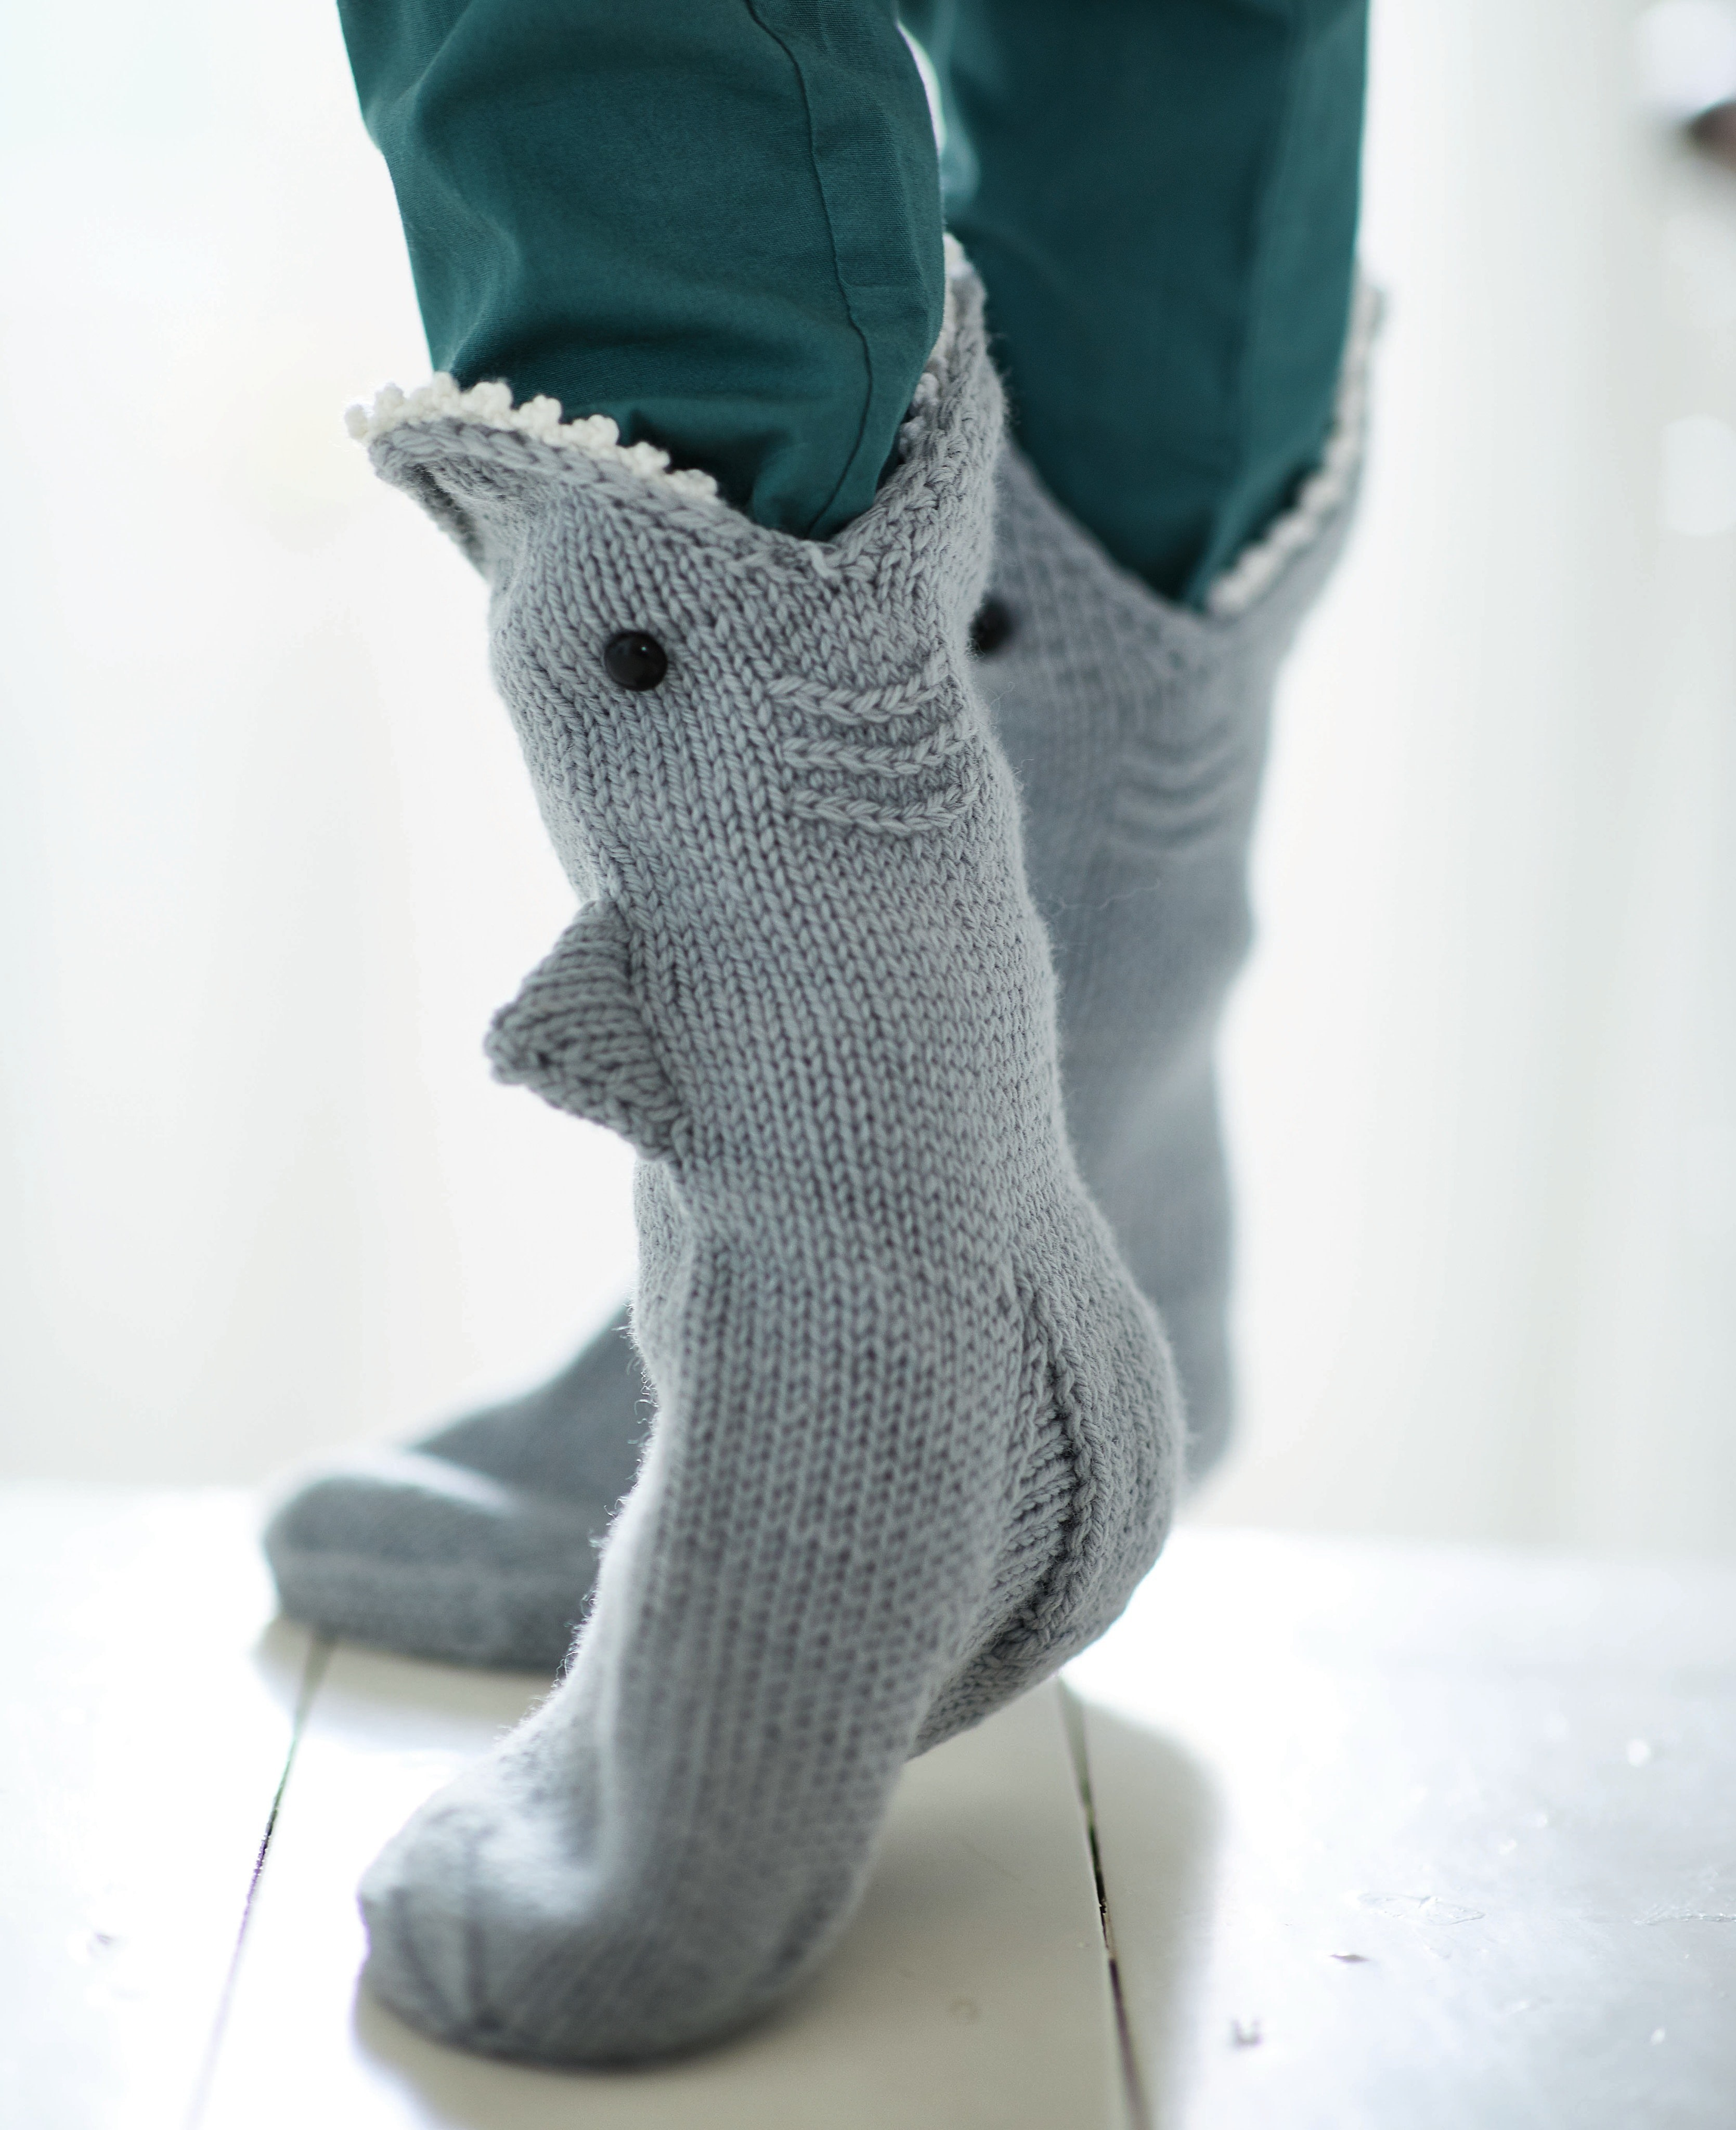 Shark Socks Extract From Knitted Animal Socks And Hats By Fiona